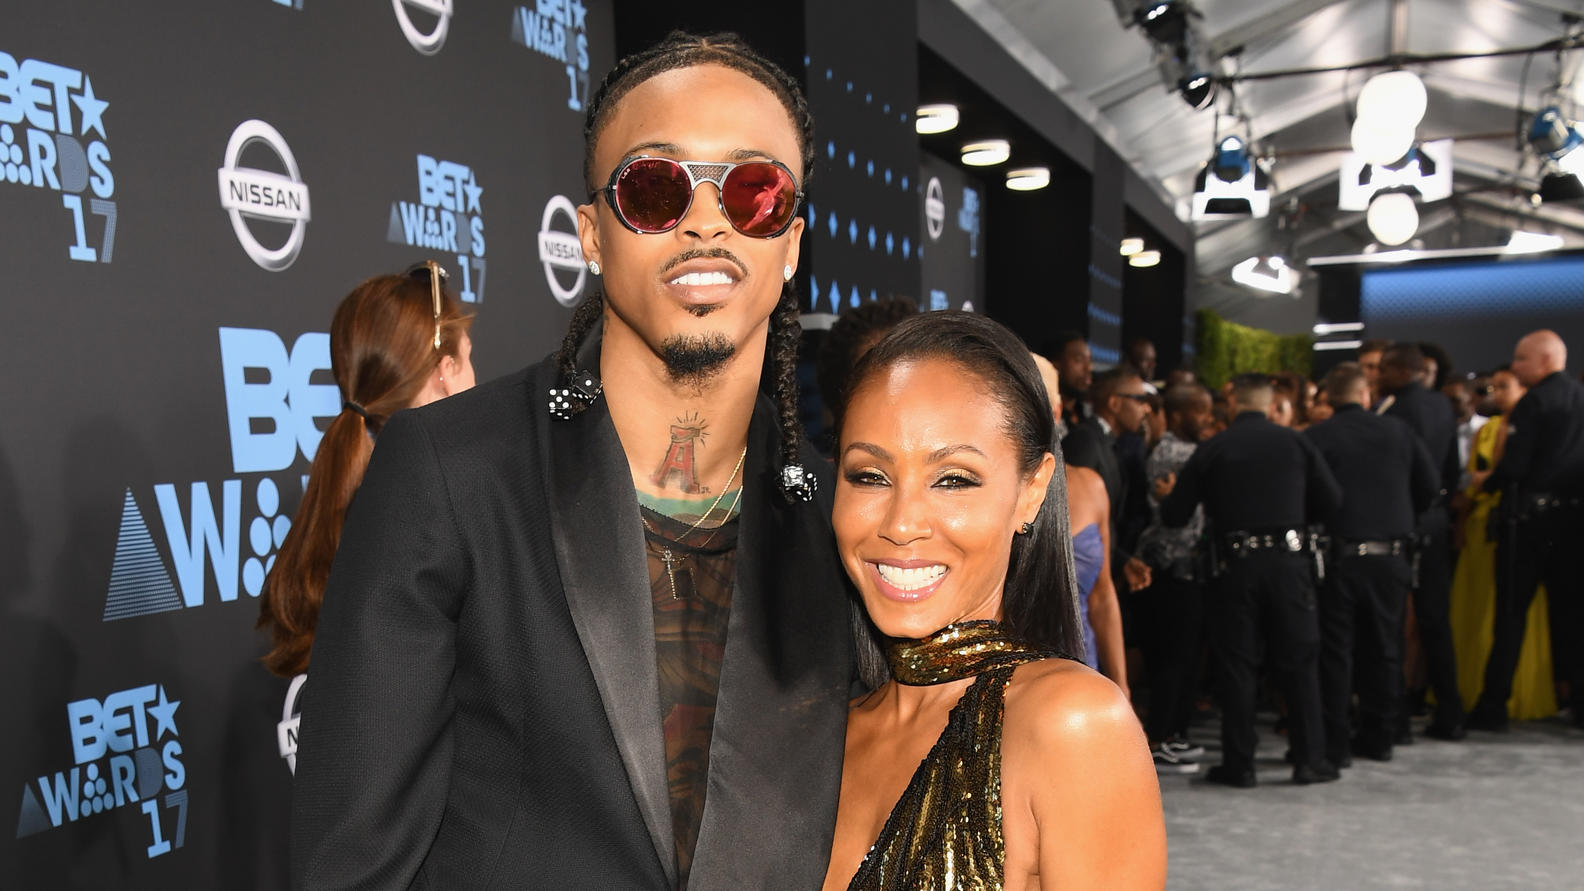 Sie kennen sich: Rapper August Alsina und Jada Pinkett Smith bei den BET Awards 2017 BET.